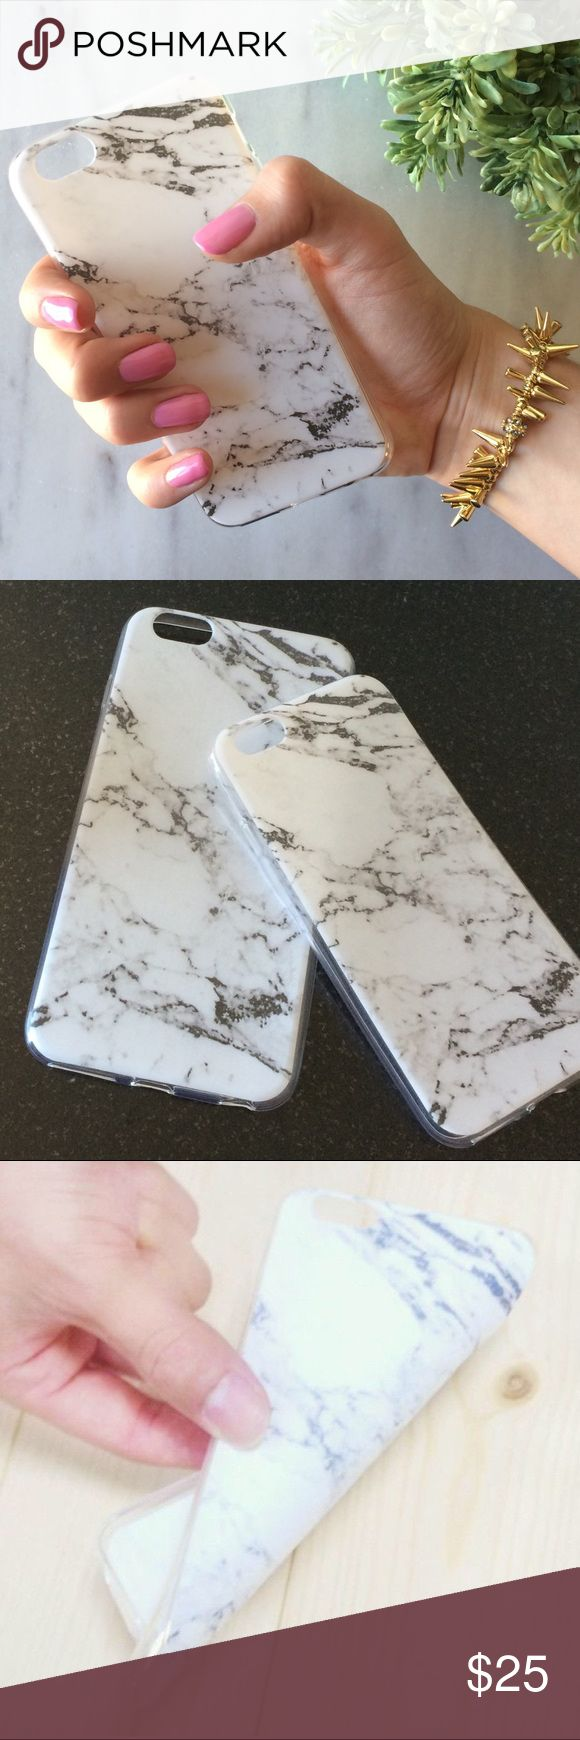 NEW! Granite Marble iPhone case This high quality faux marble phone case is made of durable soft flexible rubber material.  It protects your phone from dirt, scratches, dings and everyday use.  Compatible with the iPhone 6 6S and iPhone 6 Plus. pearl street Accessories Phone Cases